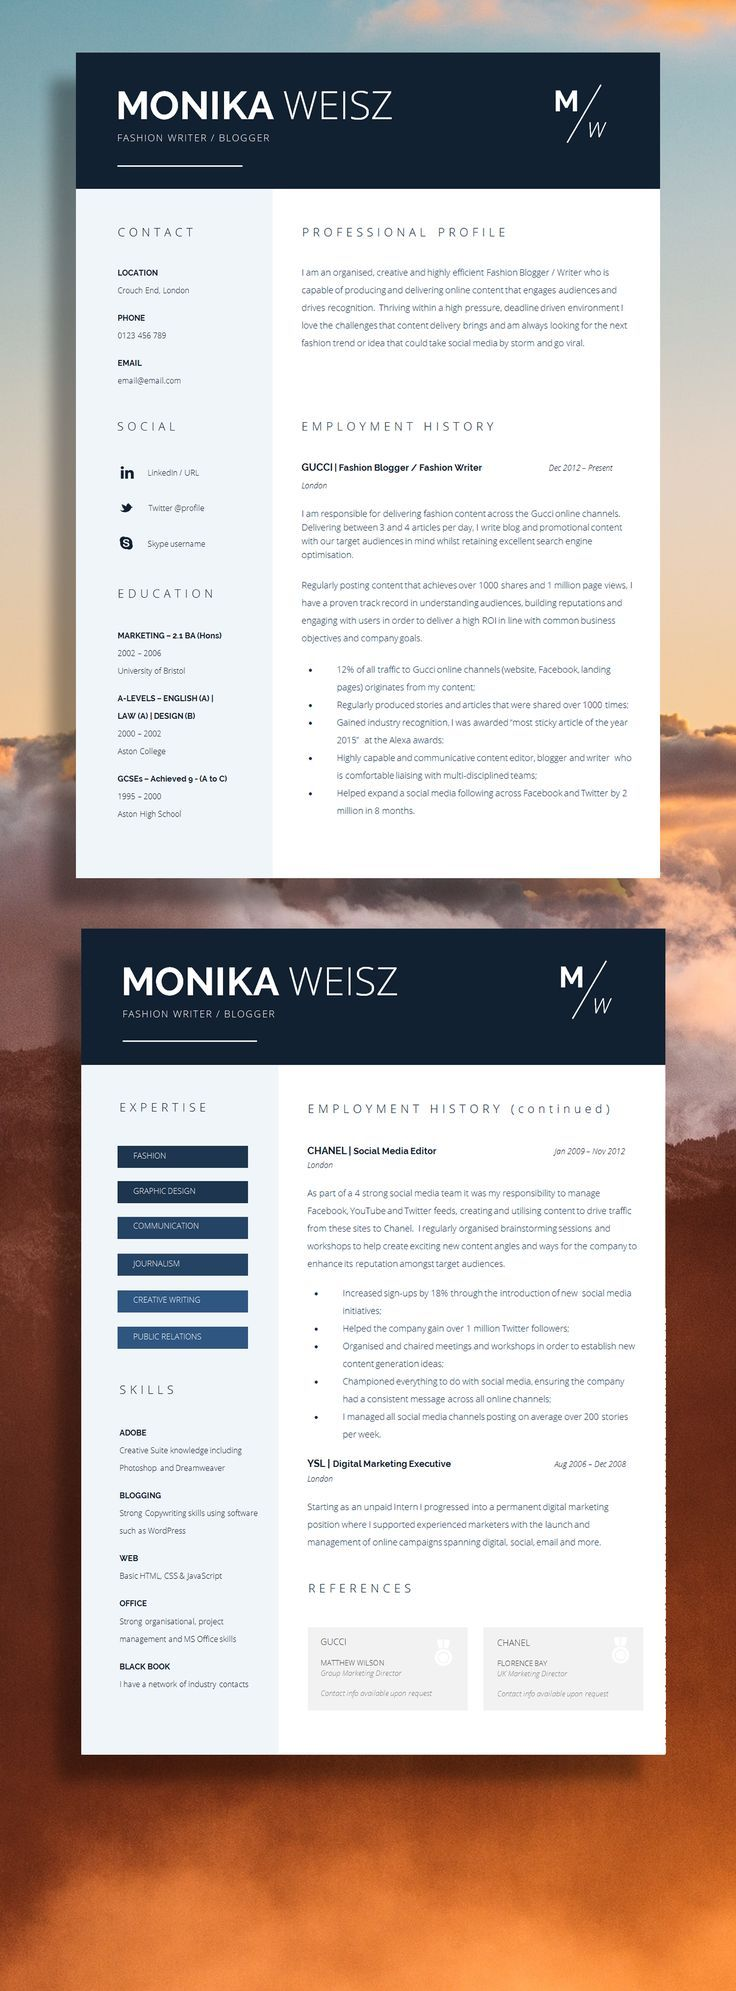 best images about resume help cover letter professional resume template cover letter for ms word modern cv design instant digital a4 us letter